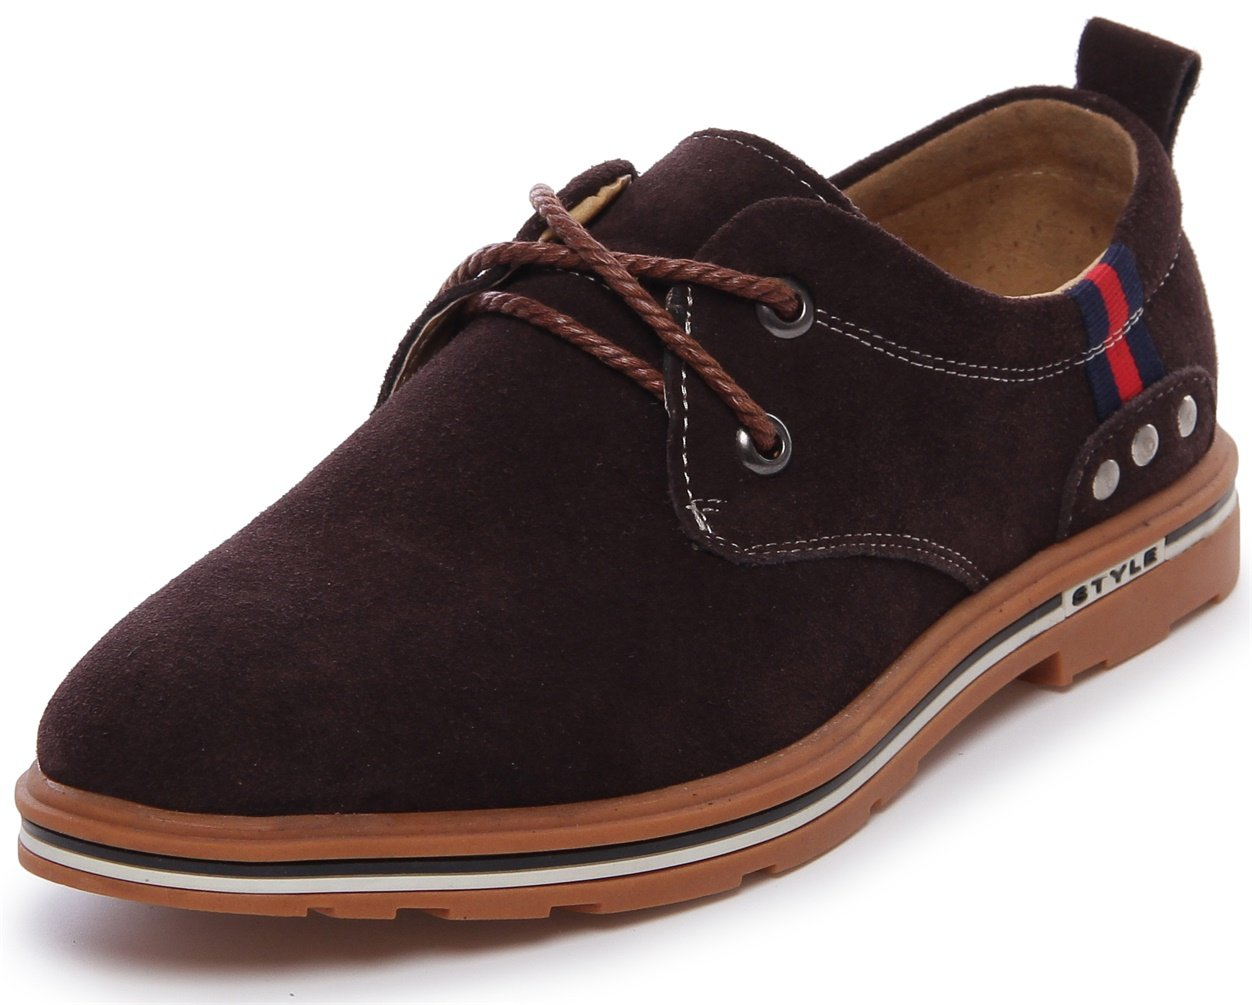 PPXID Men's Suede Leather Lace Up Casual Oxford Shoes-Brown 6 US Size